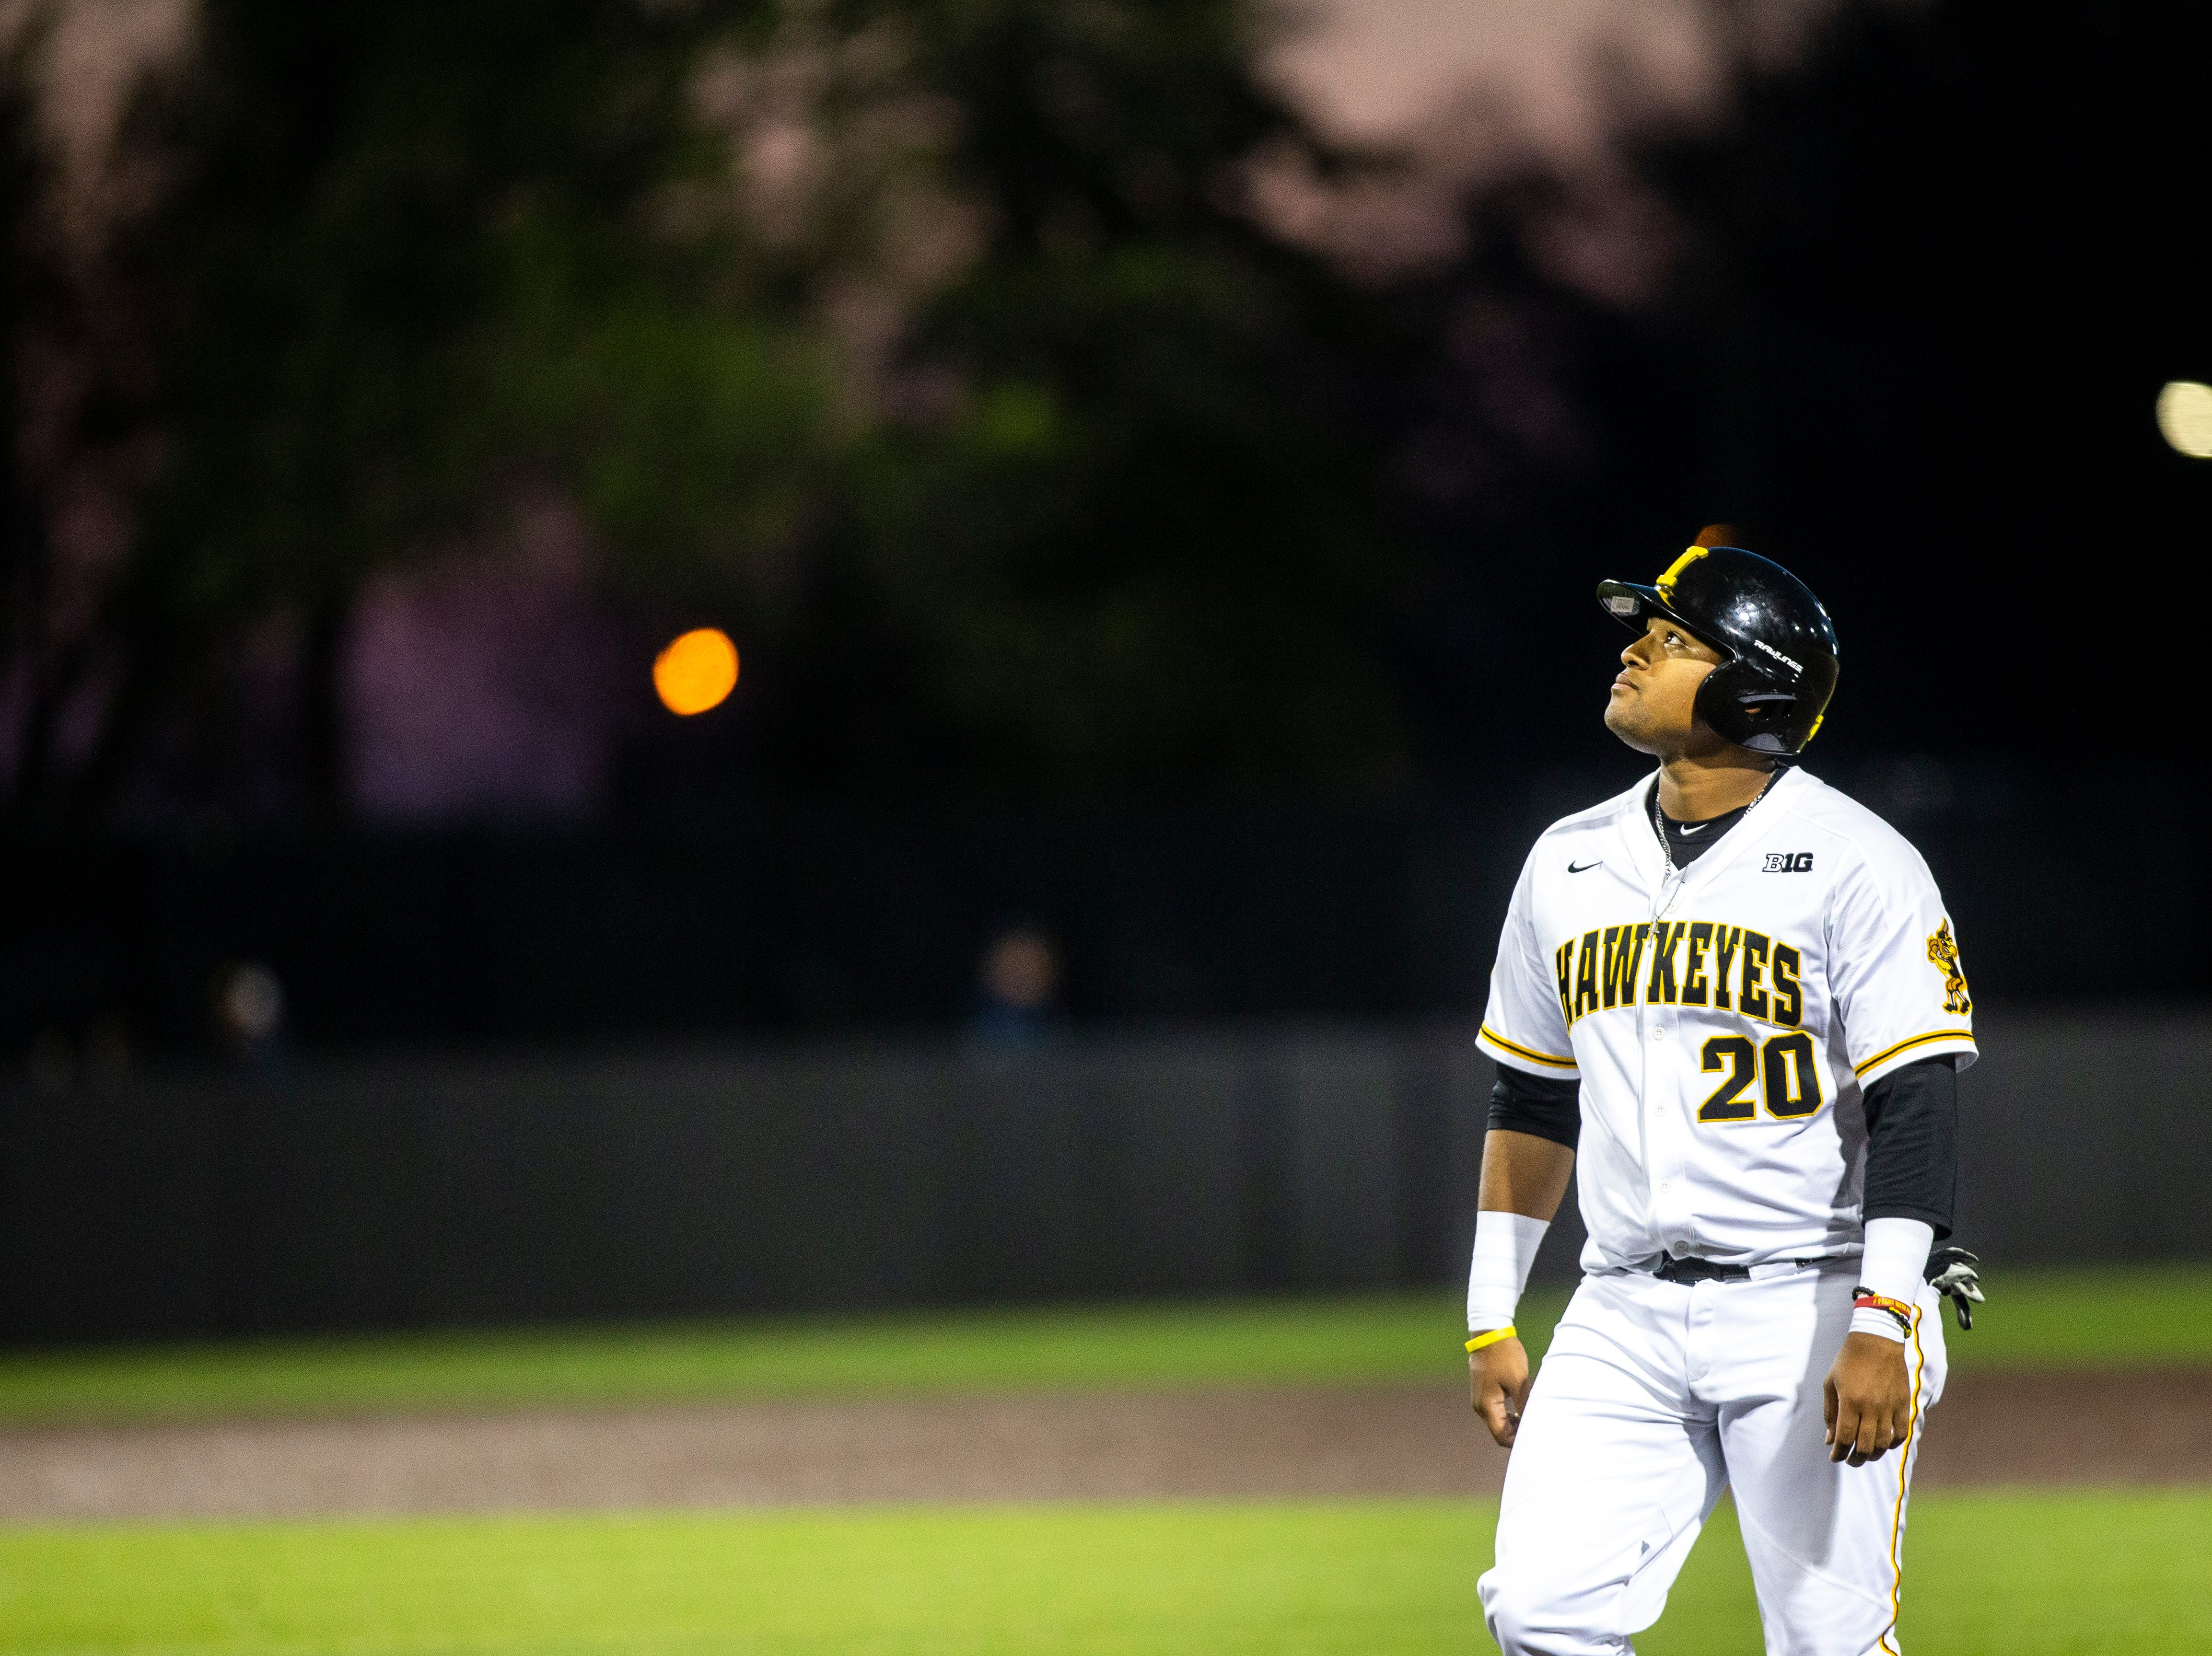 Iowa infielder Izaya Fullard (20) looks up while standing on first base as the sun sets during NCAA non conference baseball game, Friday, May 3, 2019, at Duane Banks Field in Iowa City, Iowa.